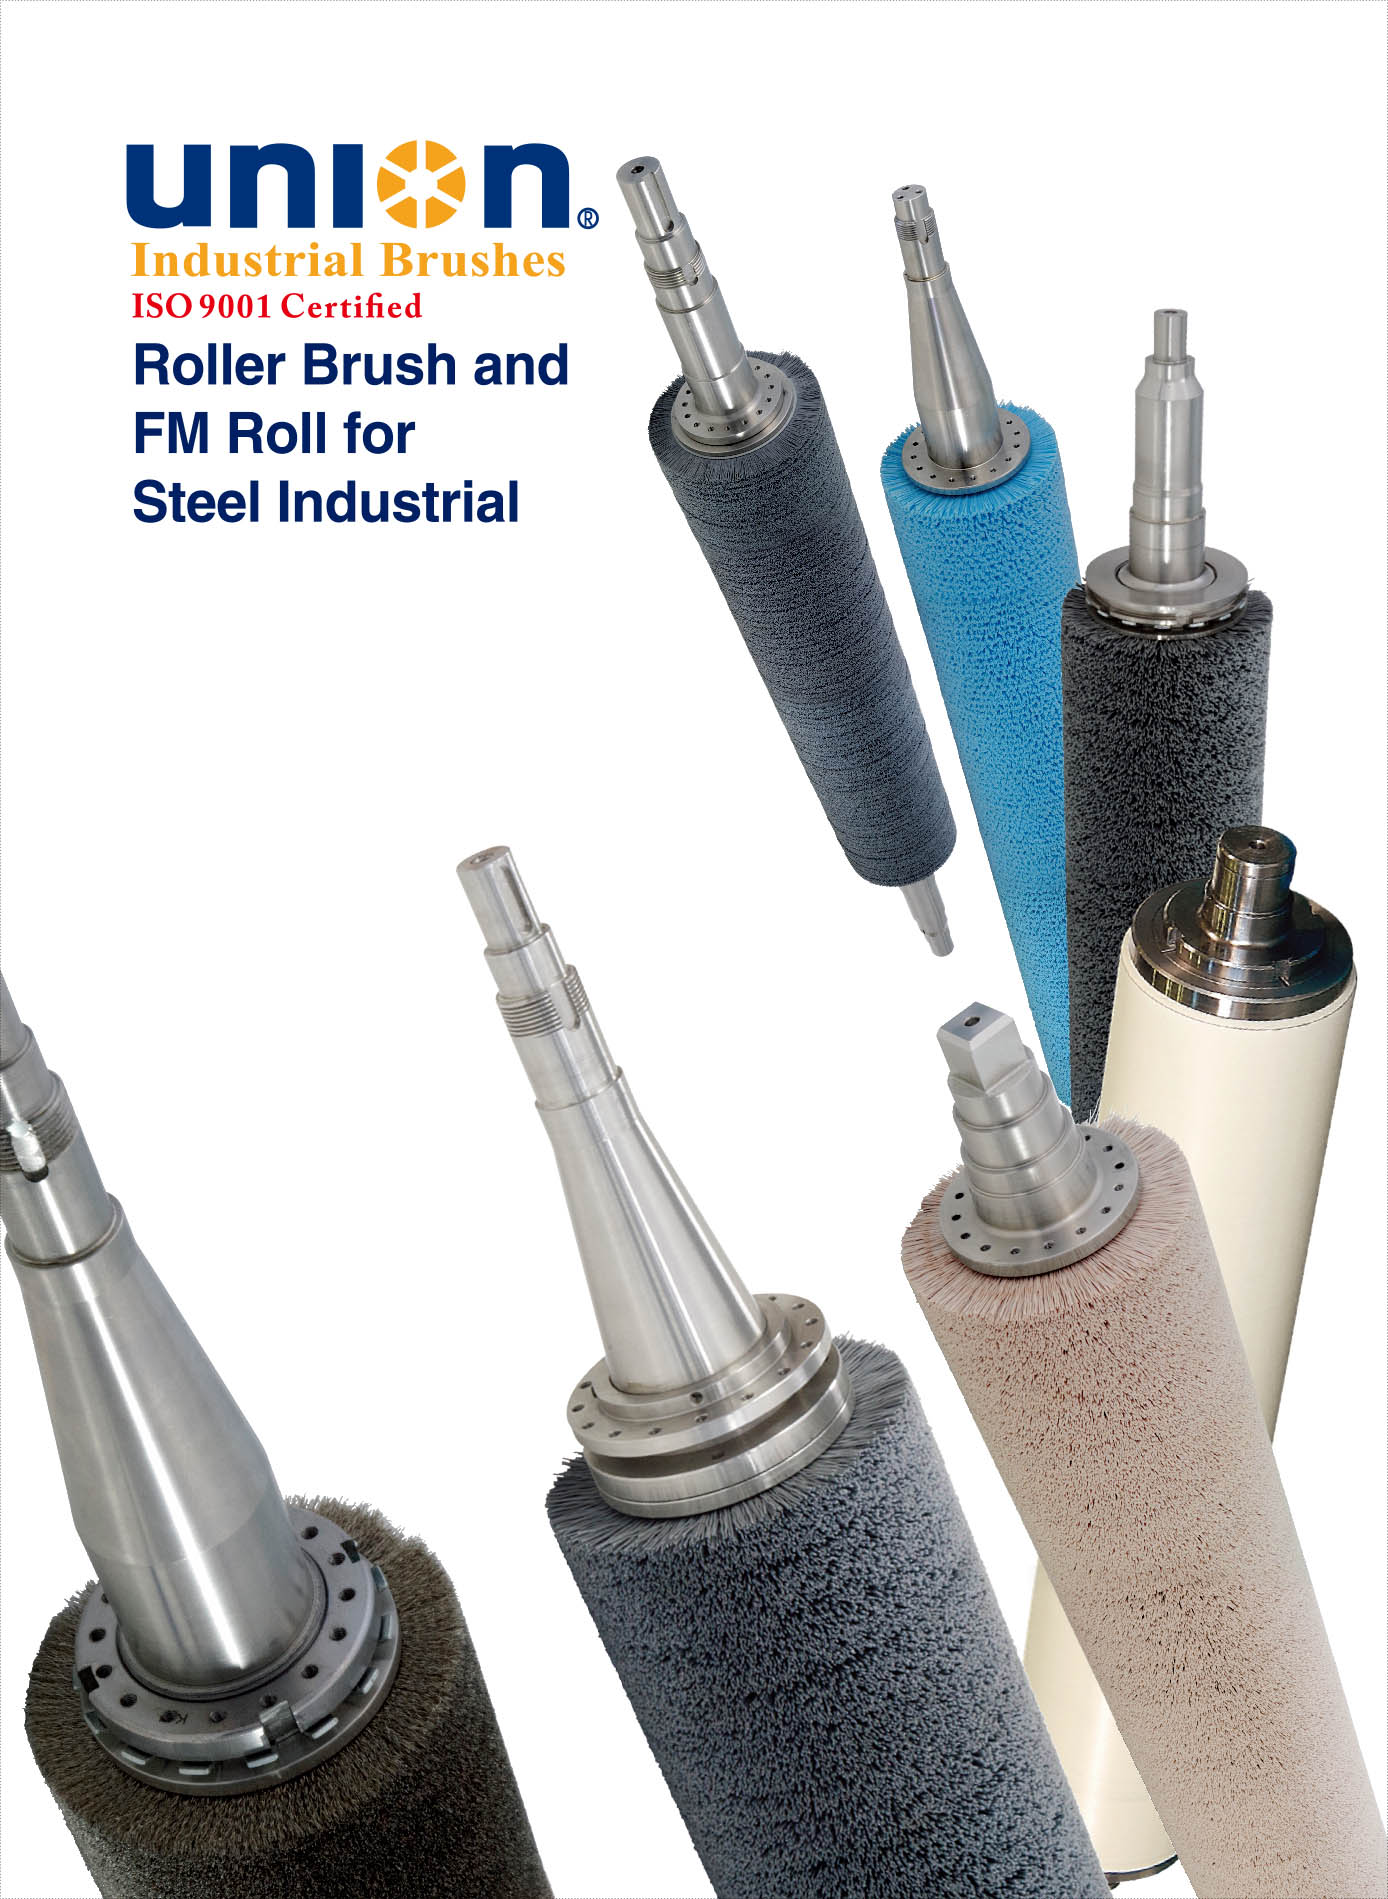 NION Roller Brush and High Tech FM Roll for Steel Industrial